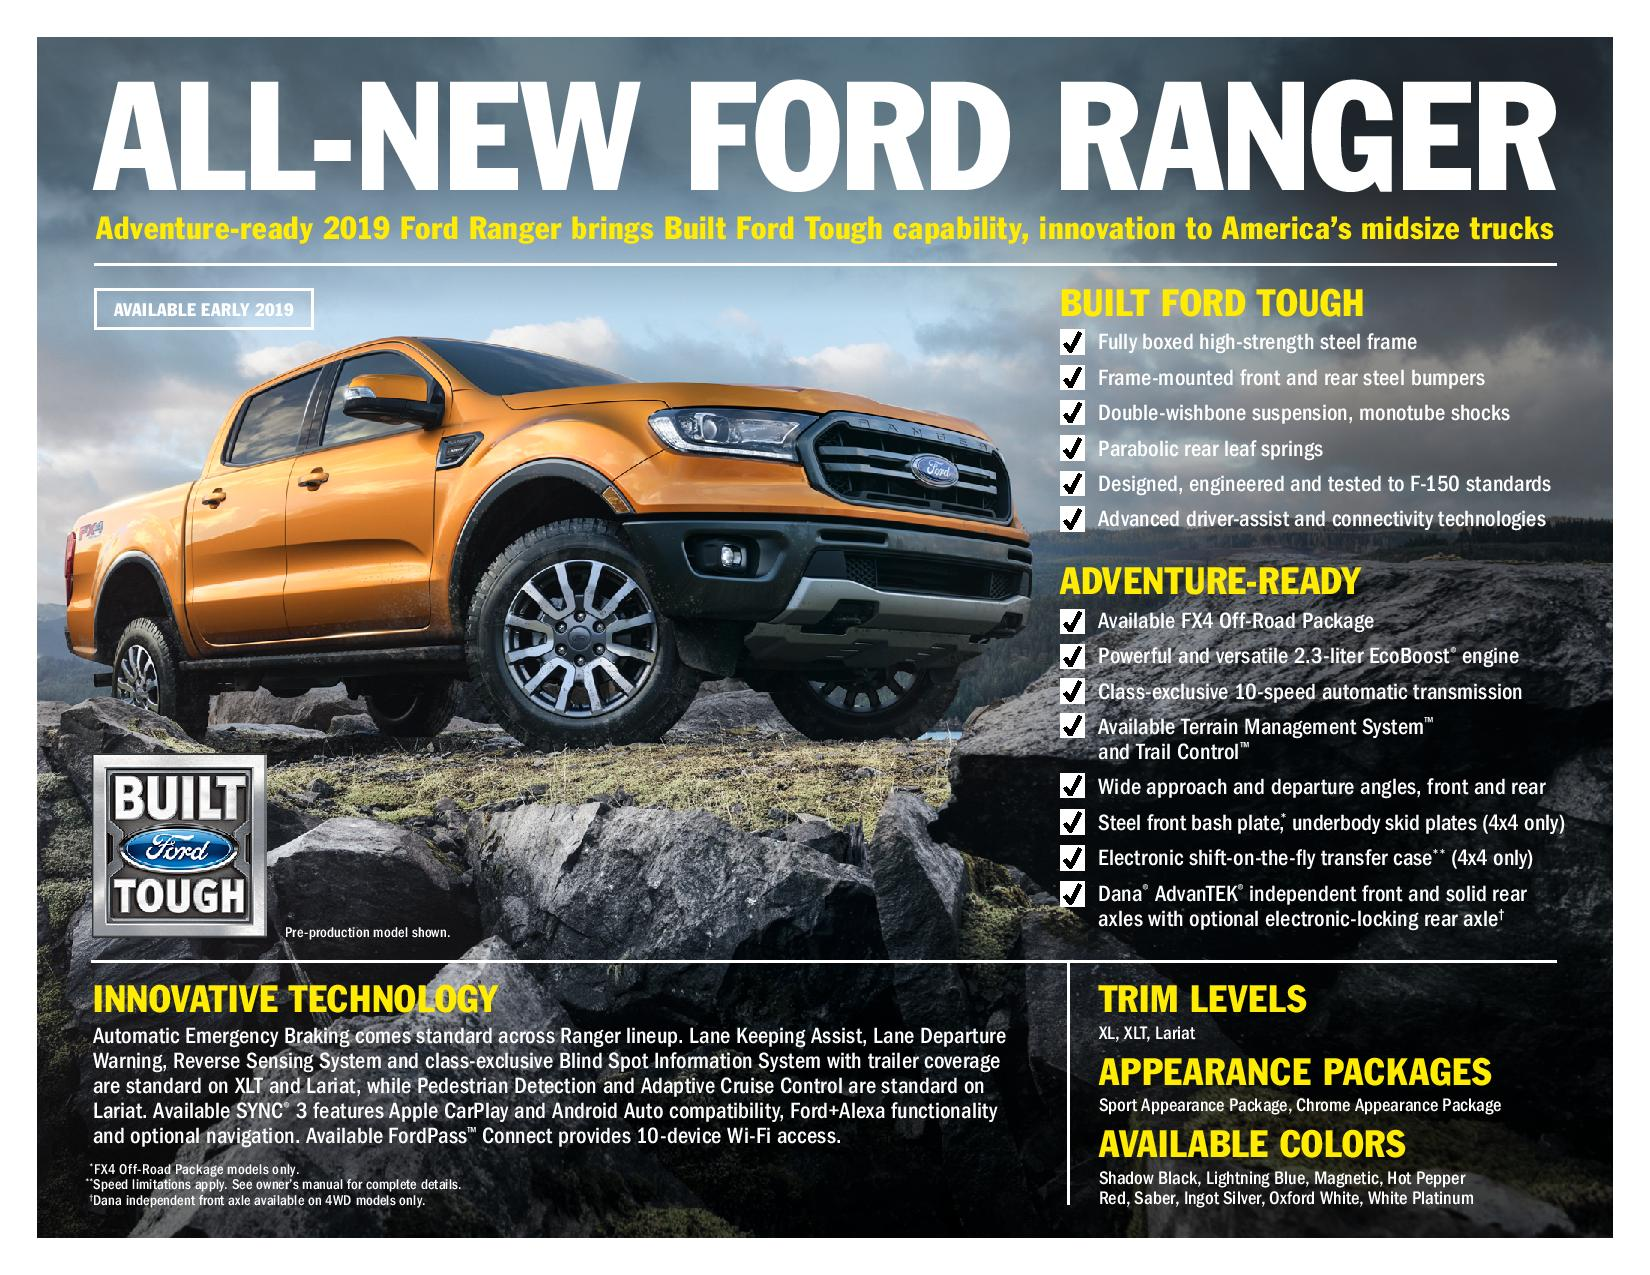 http://media.advance.net/auto_news_national_desk/photo/2018/01/13/All -New 2019 Ranger Fact Sheet-page-001.jpg